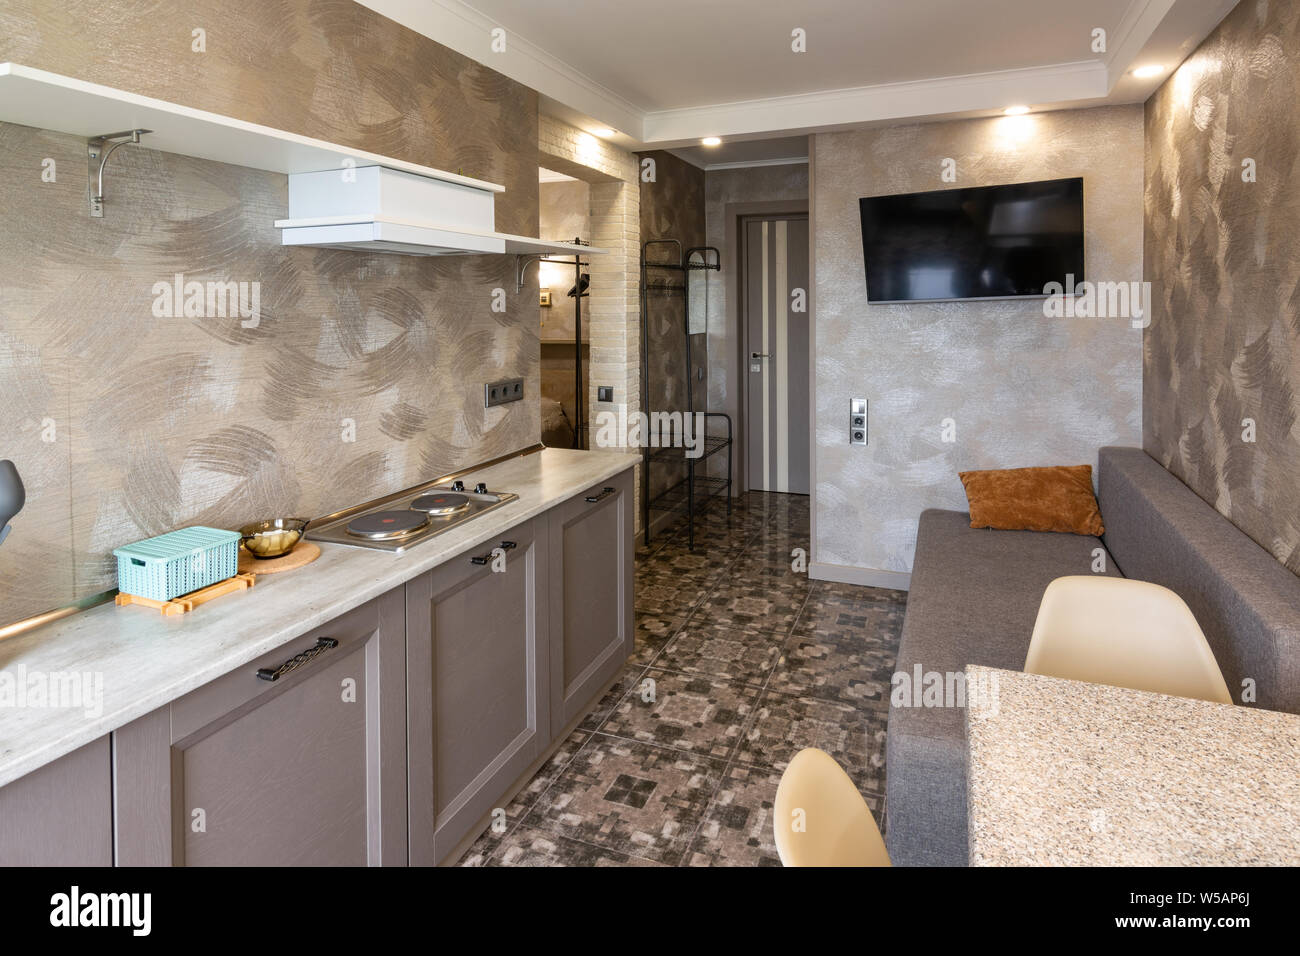 The Interior Of A Small Living Room And Kitchen In The Hotel Room Stock Photo Alamy